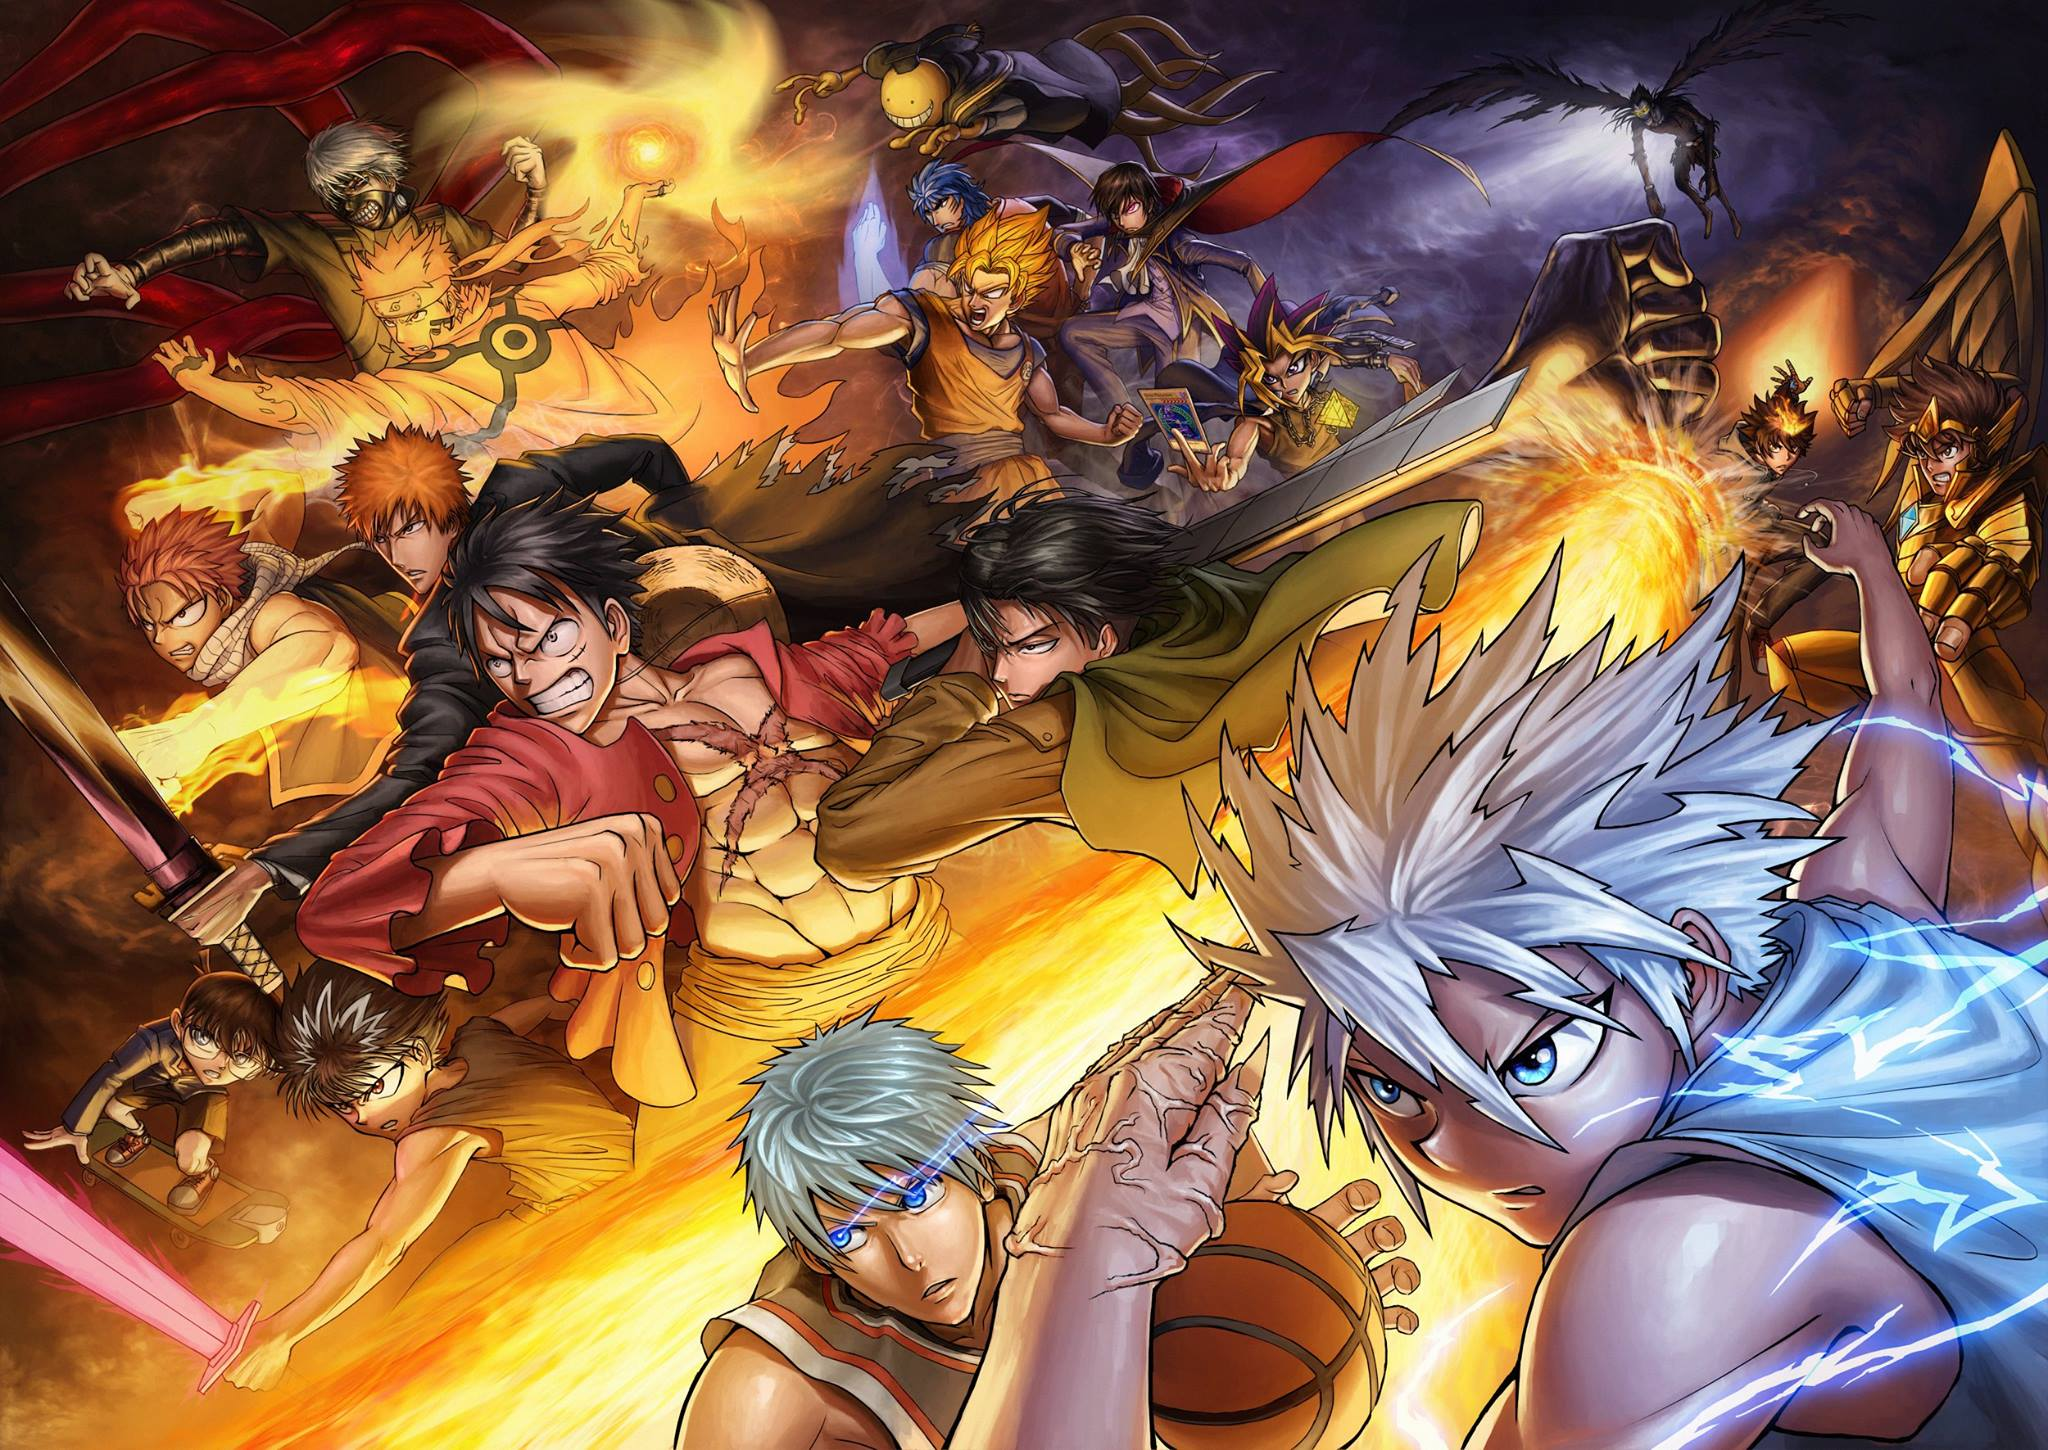 beafccbbfbd-manga-convention-design-posters-wallpaper-wp5801743